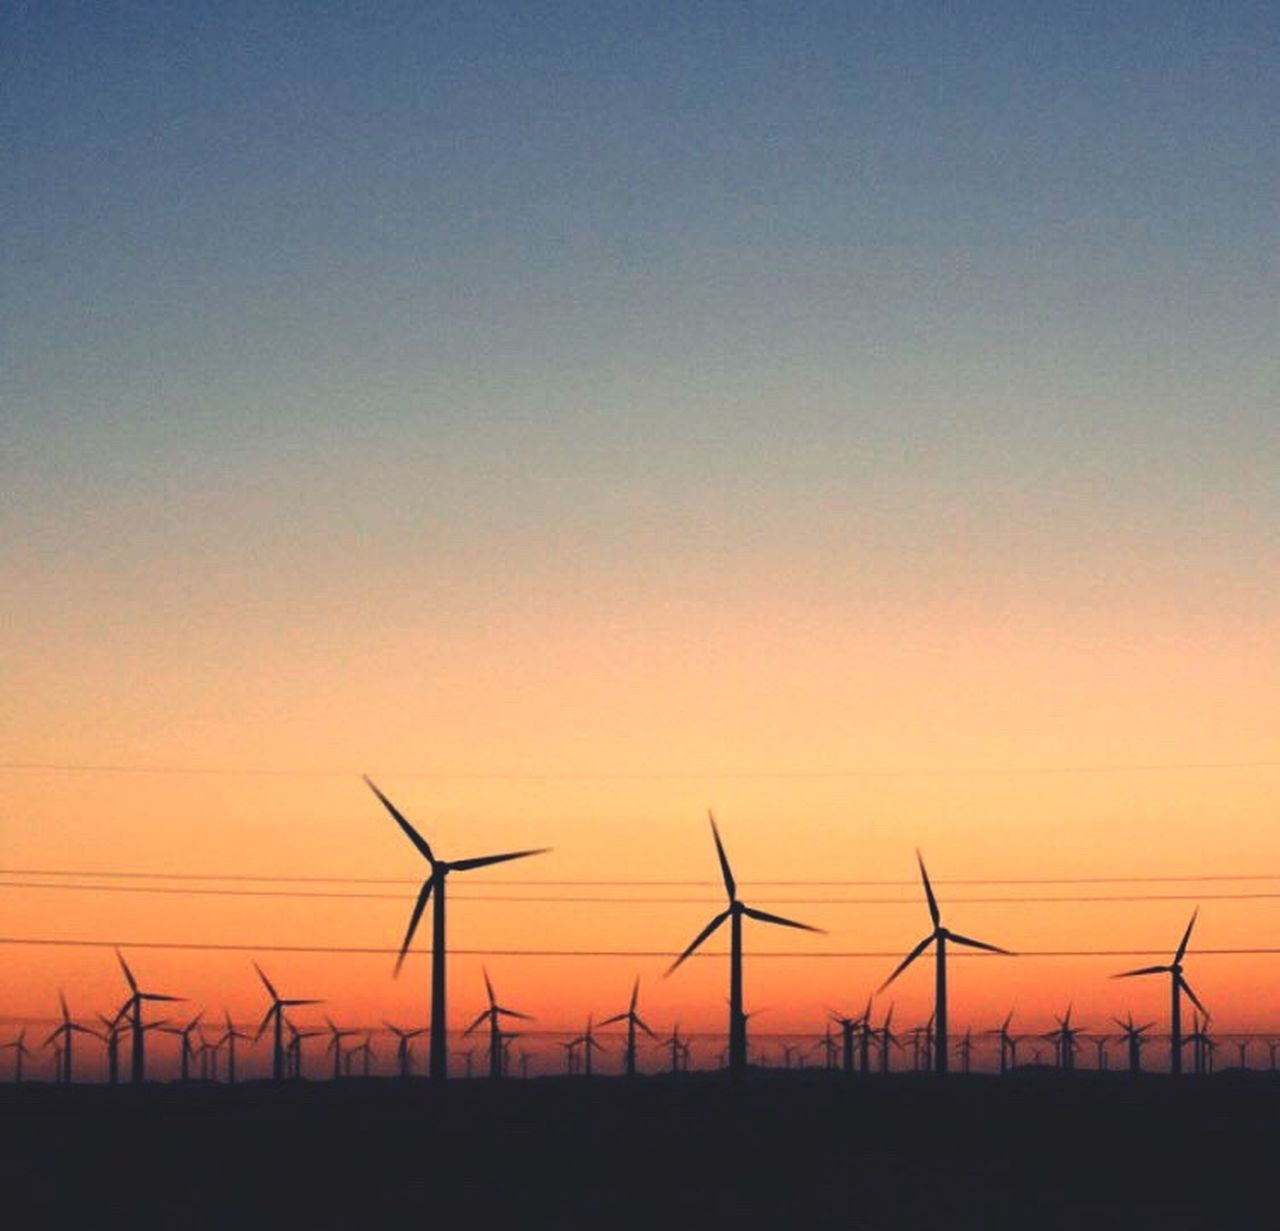 sunset, fuel and power generation, environmental conservation, alternative energy, wind turbine, wind power, no people, orange color, silhouette, nature, renewable energy, sky, copy space, outdoors, scenics, technology, landscape, field, tranquil scene, sun, clear sky, tranquility, windmill, rural scene, beauty in nature, industrial windmill, day